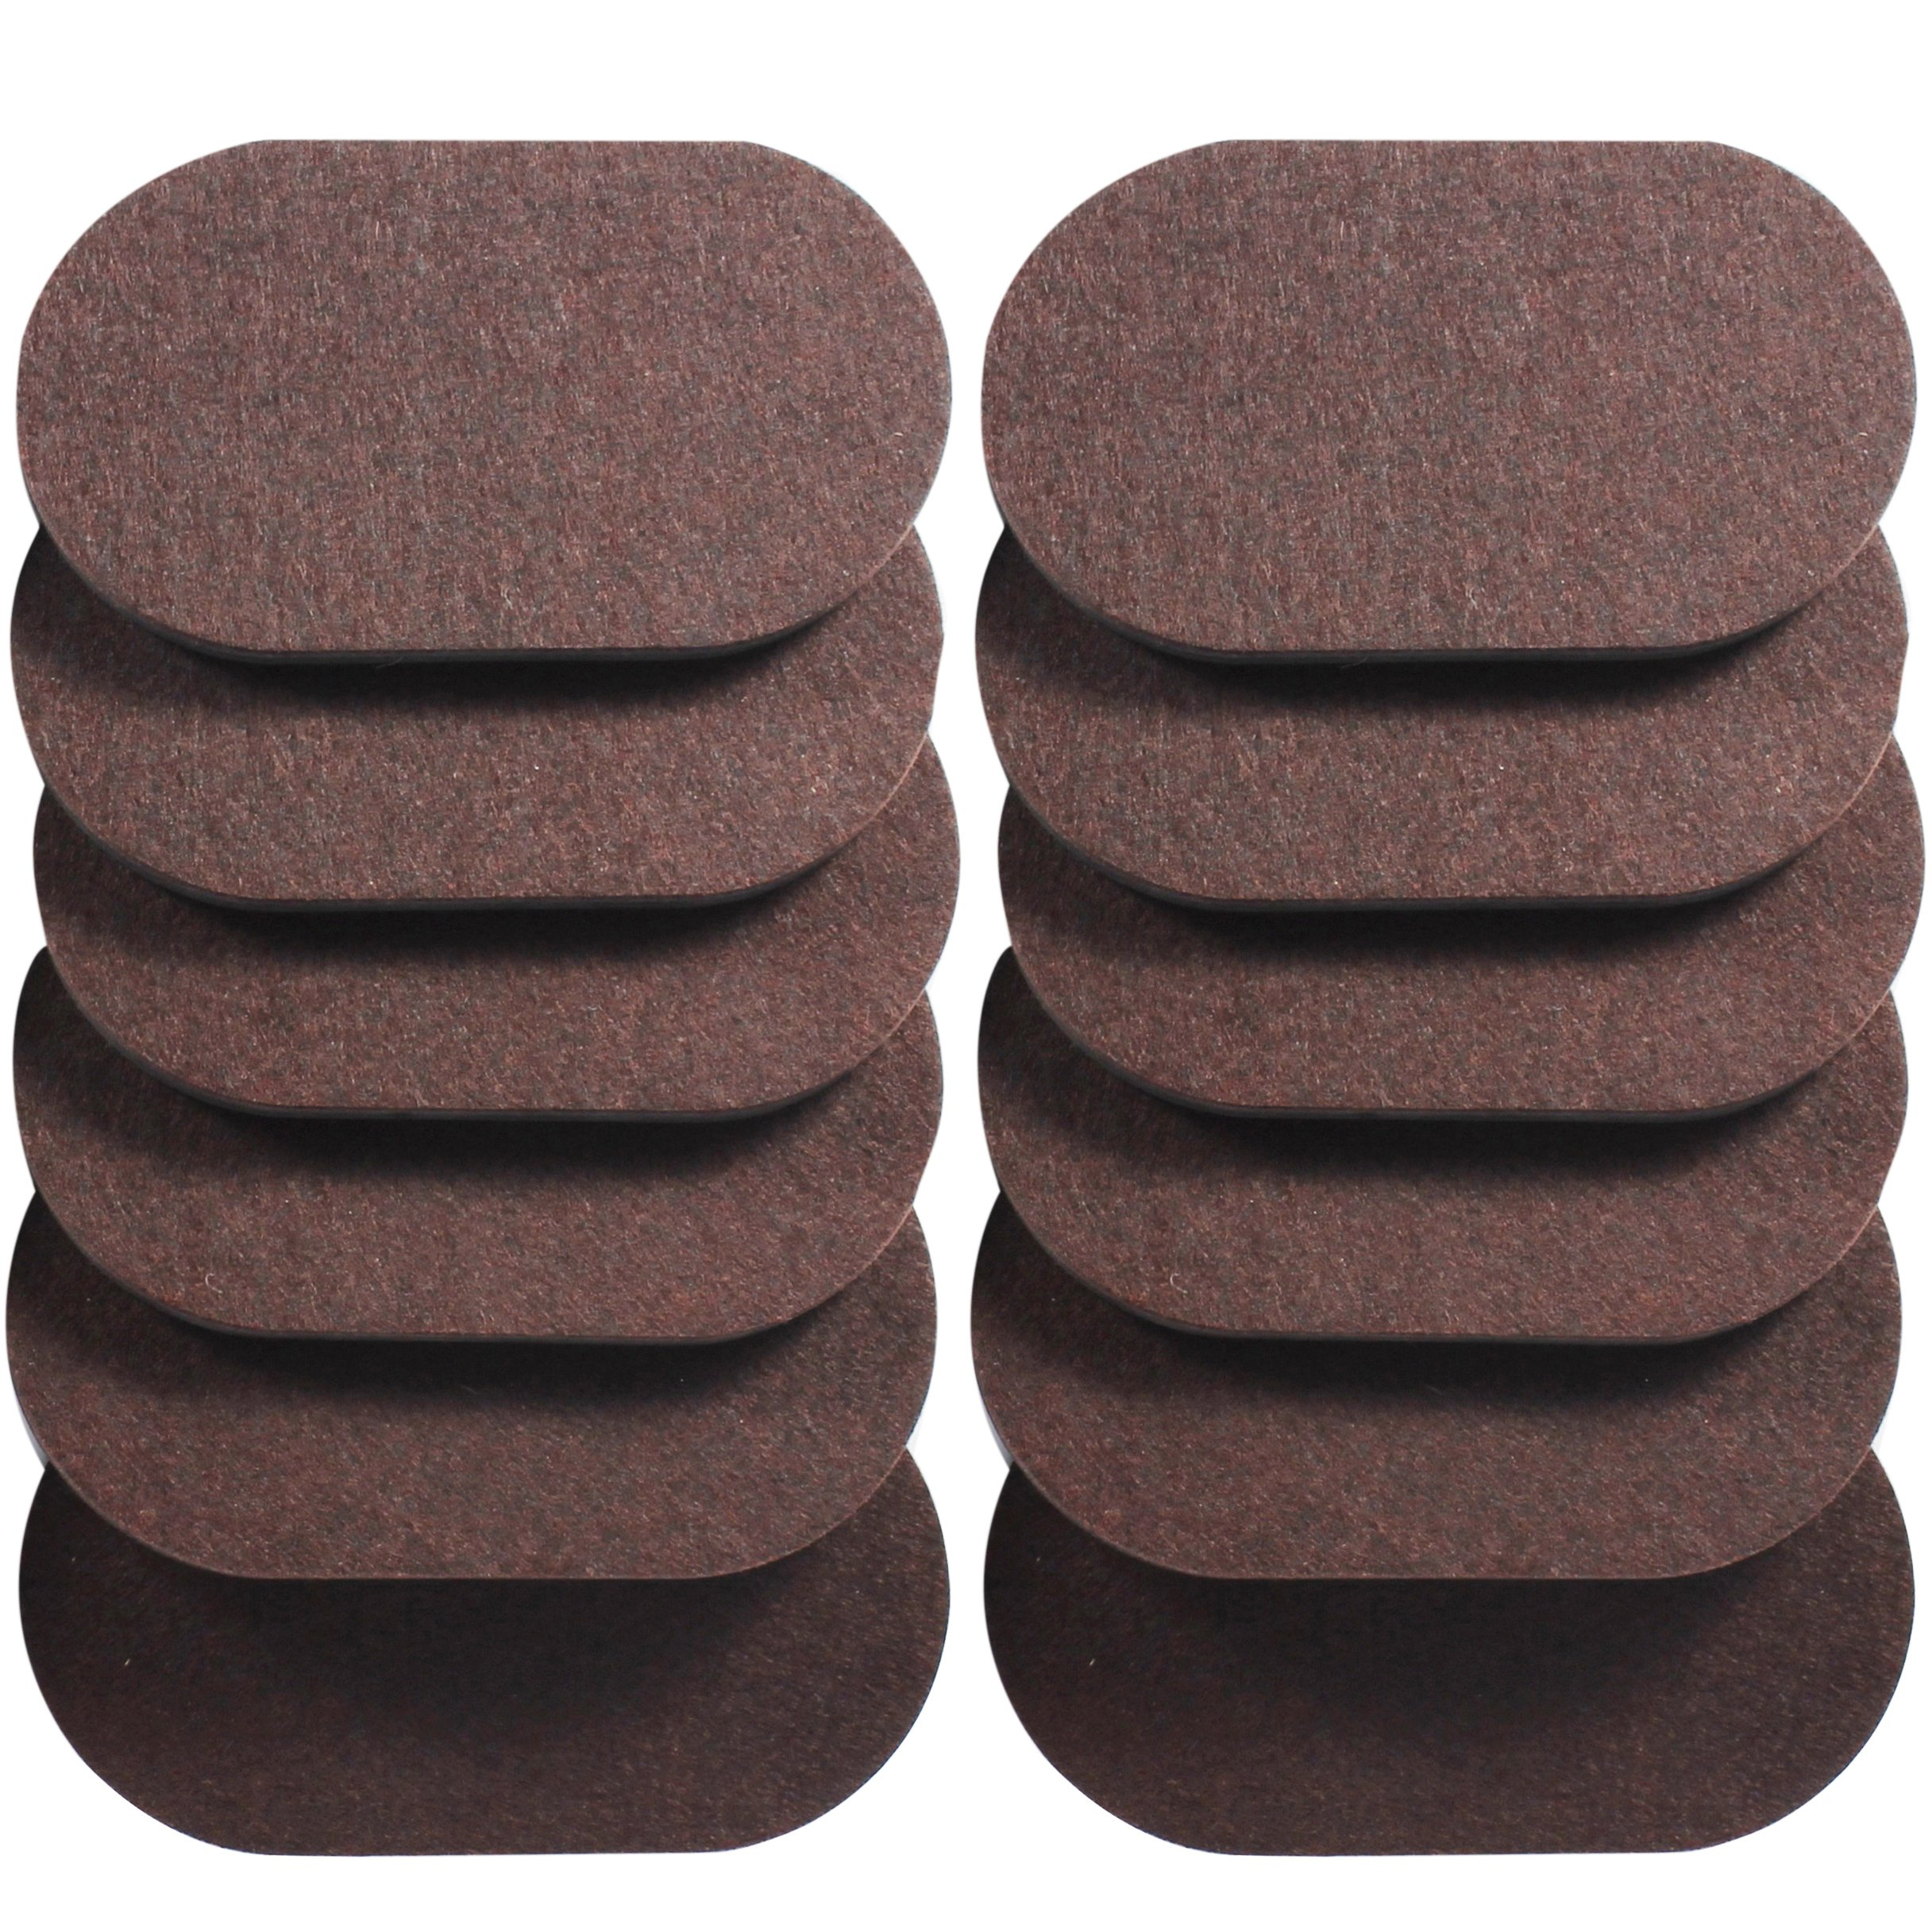 Liyic 12 Pack 6in. X 3.5in.Reusable Brown Oval Felt Furniture Sliders for Hard Surfaces.Premium Heavy Furniture Movers for Wooden Floor,Furniture Felt Slider Heavy Duty Felt Sliders Hard Floor Slider by Liyic (Image #1)